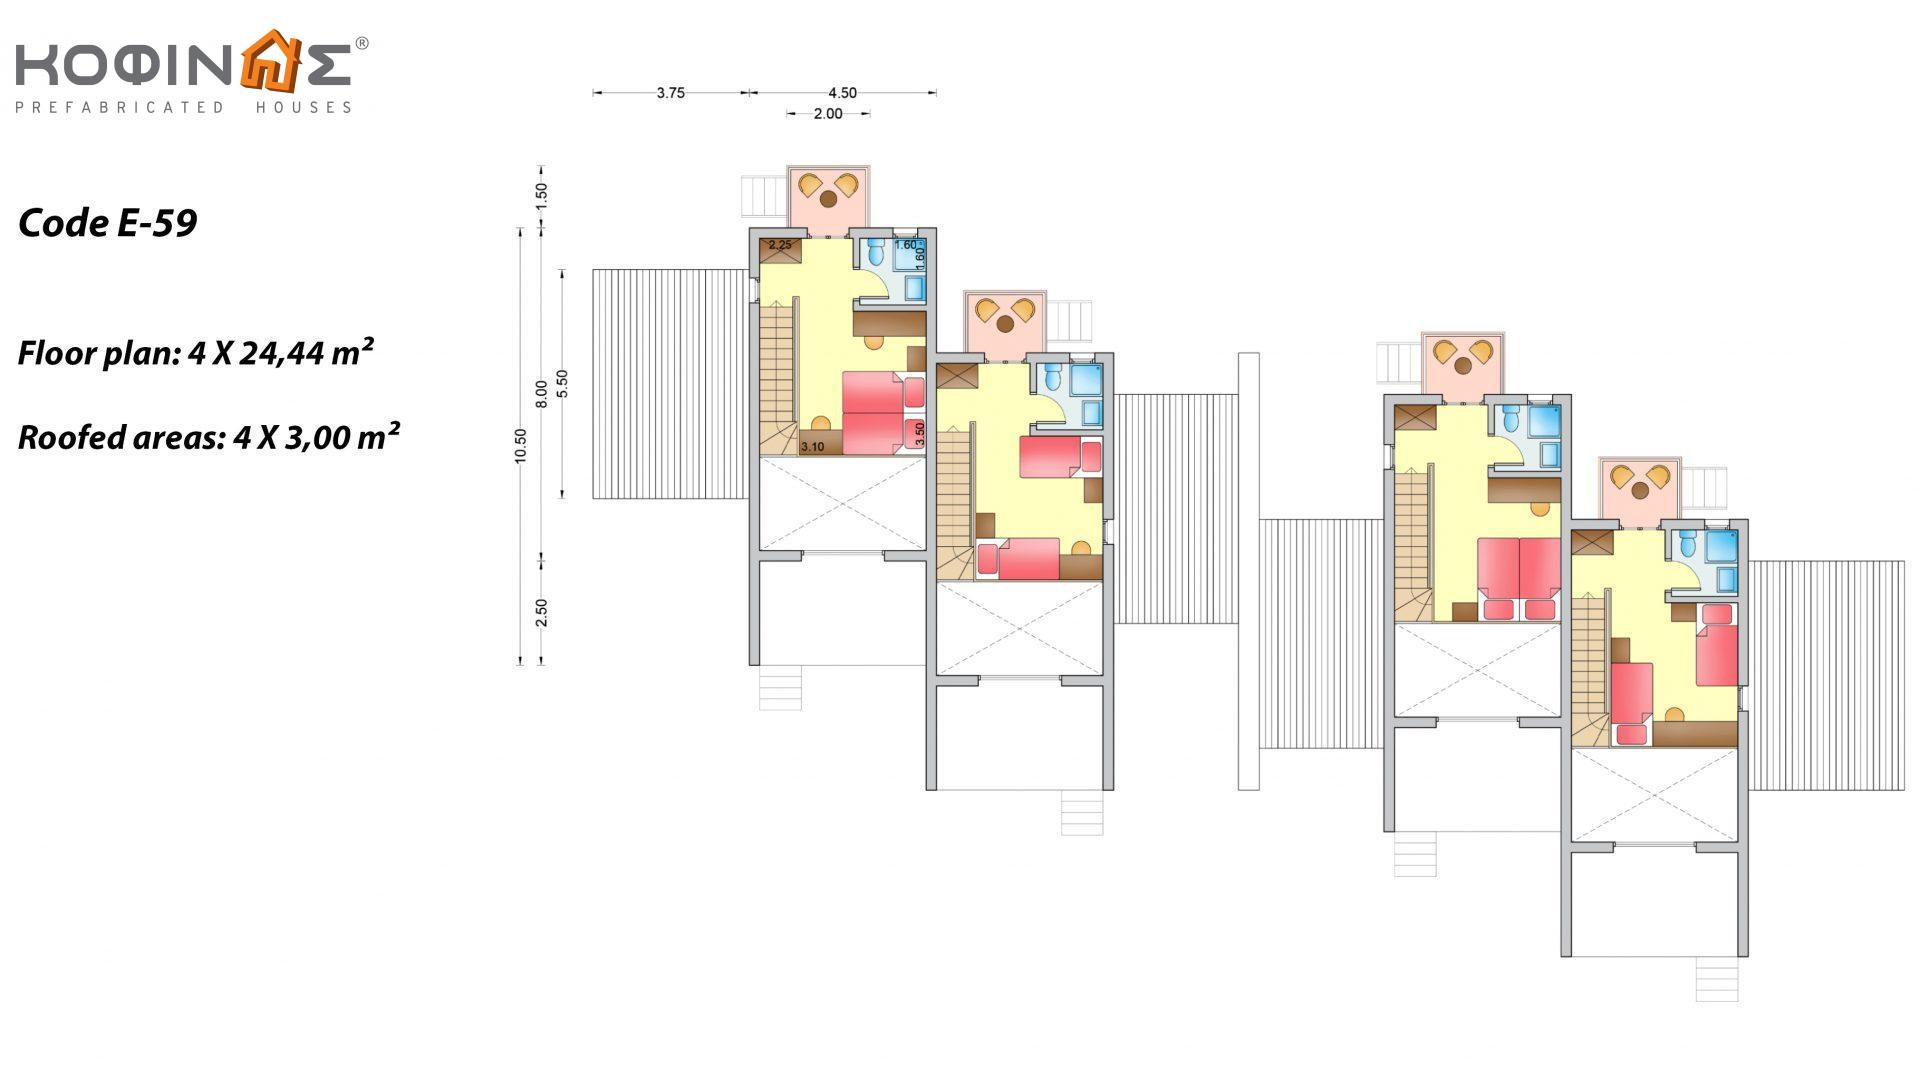 Complex of 2-story houses E-59, total surface of 4 x 59,82 = 239,28 τ.μ., roofed areas 67.76 m²